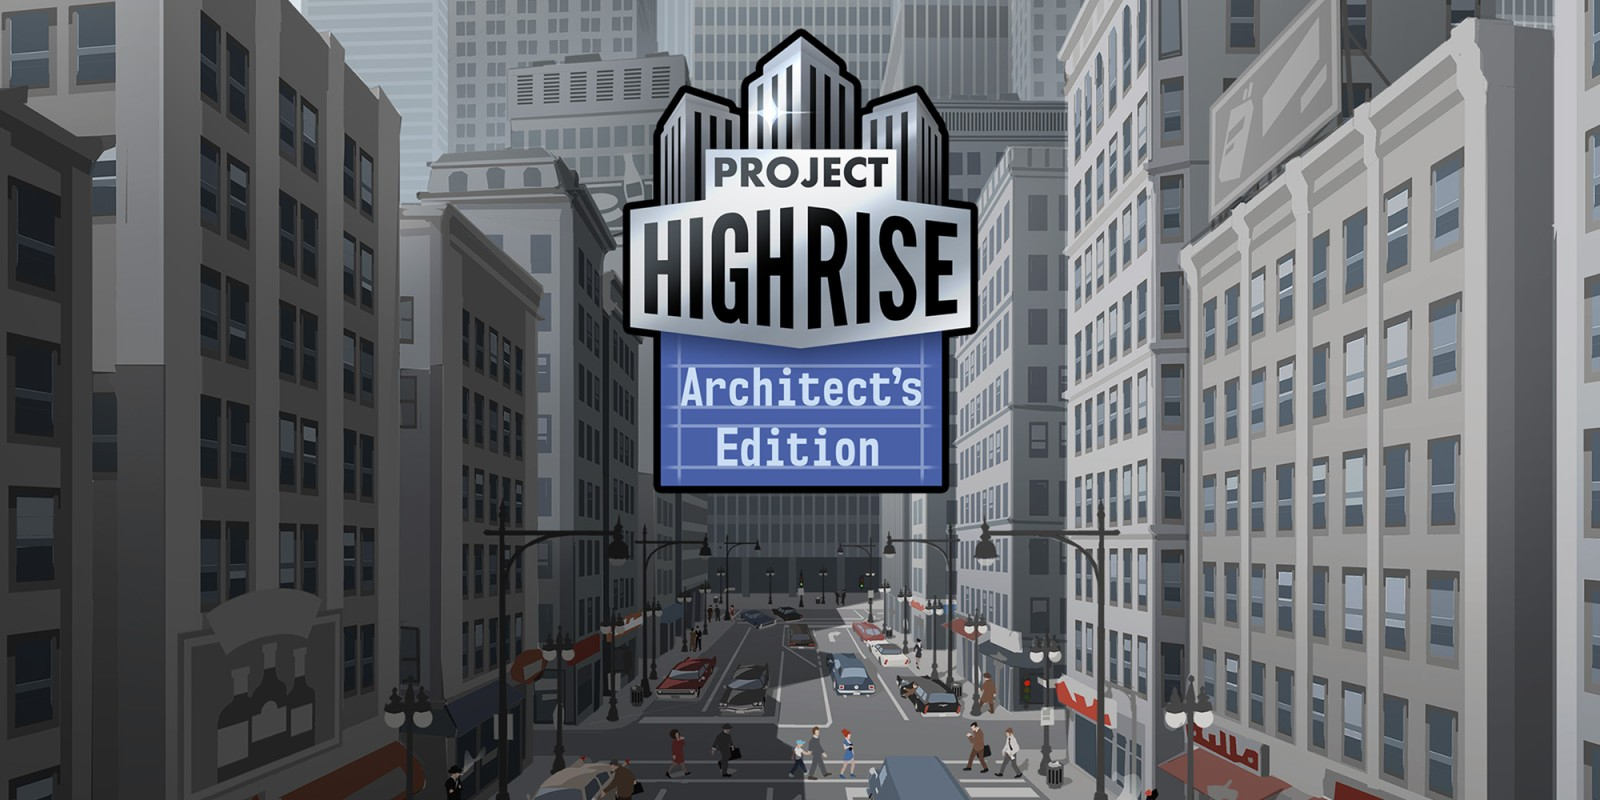 Project Highrise: Architect's Edition Masthead